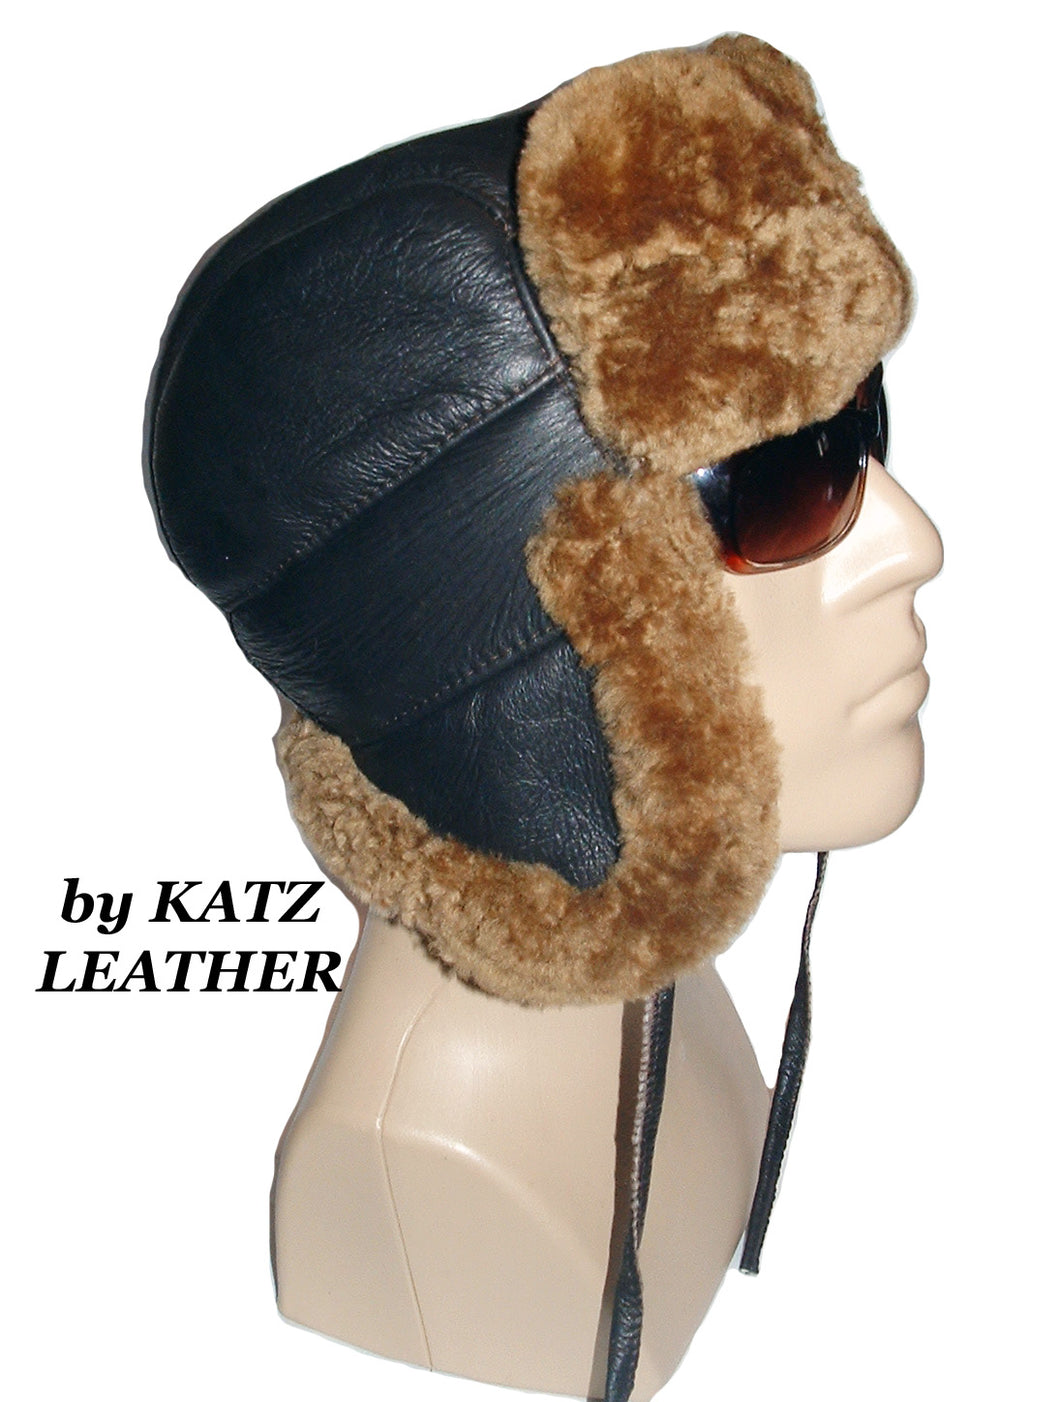 Sheepskin hunter bomber aviator hat by Ben Katz. Real shearling, super warm. Classic style.